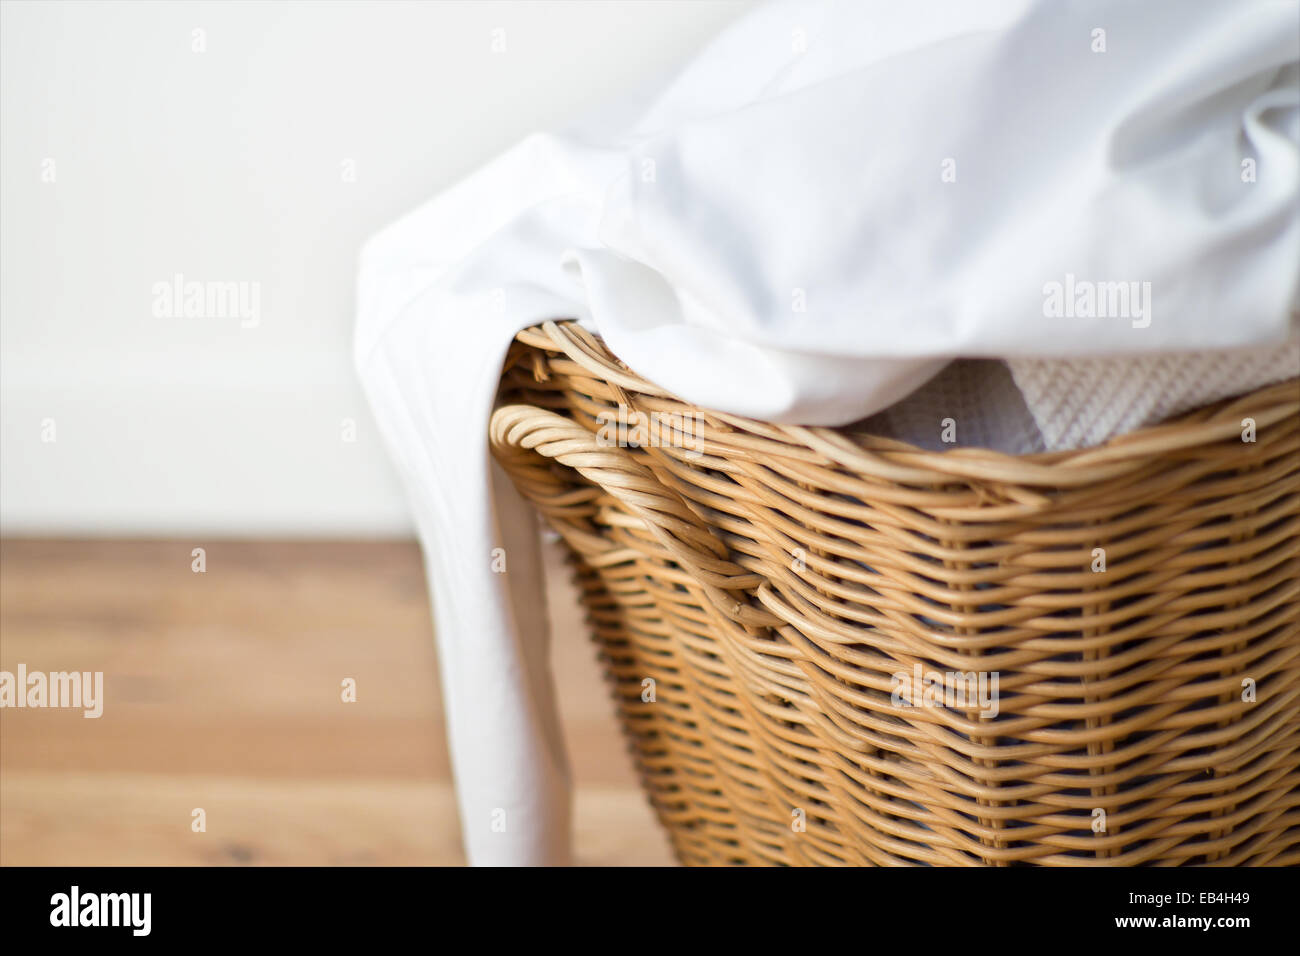 Closed Laundry Basket Woven Basket Laundry Stock Photos And Woven Basket Laundry